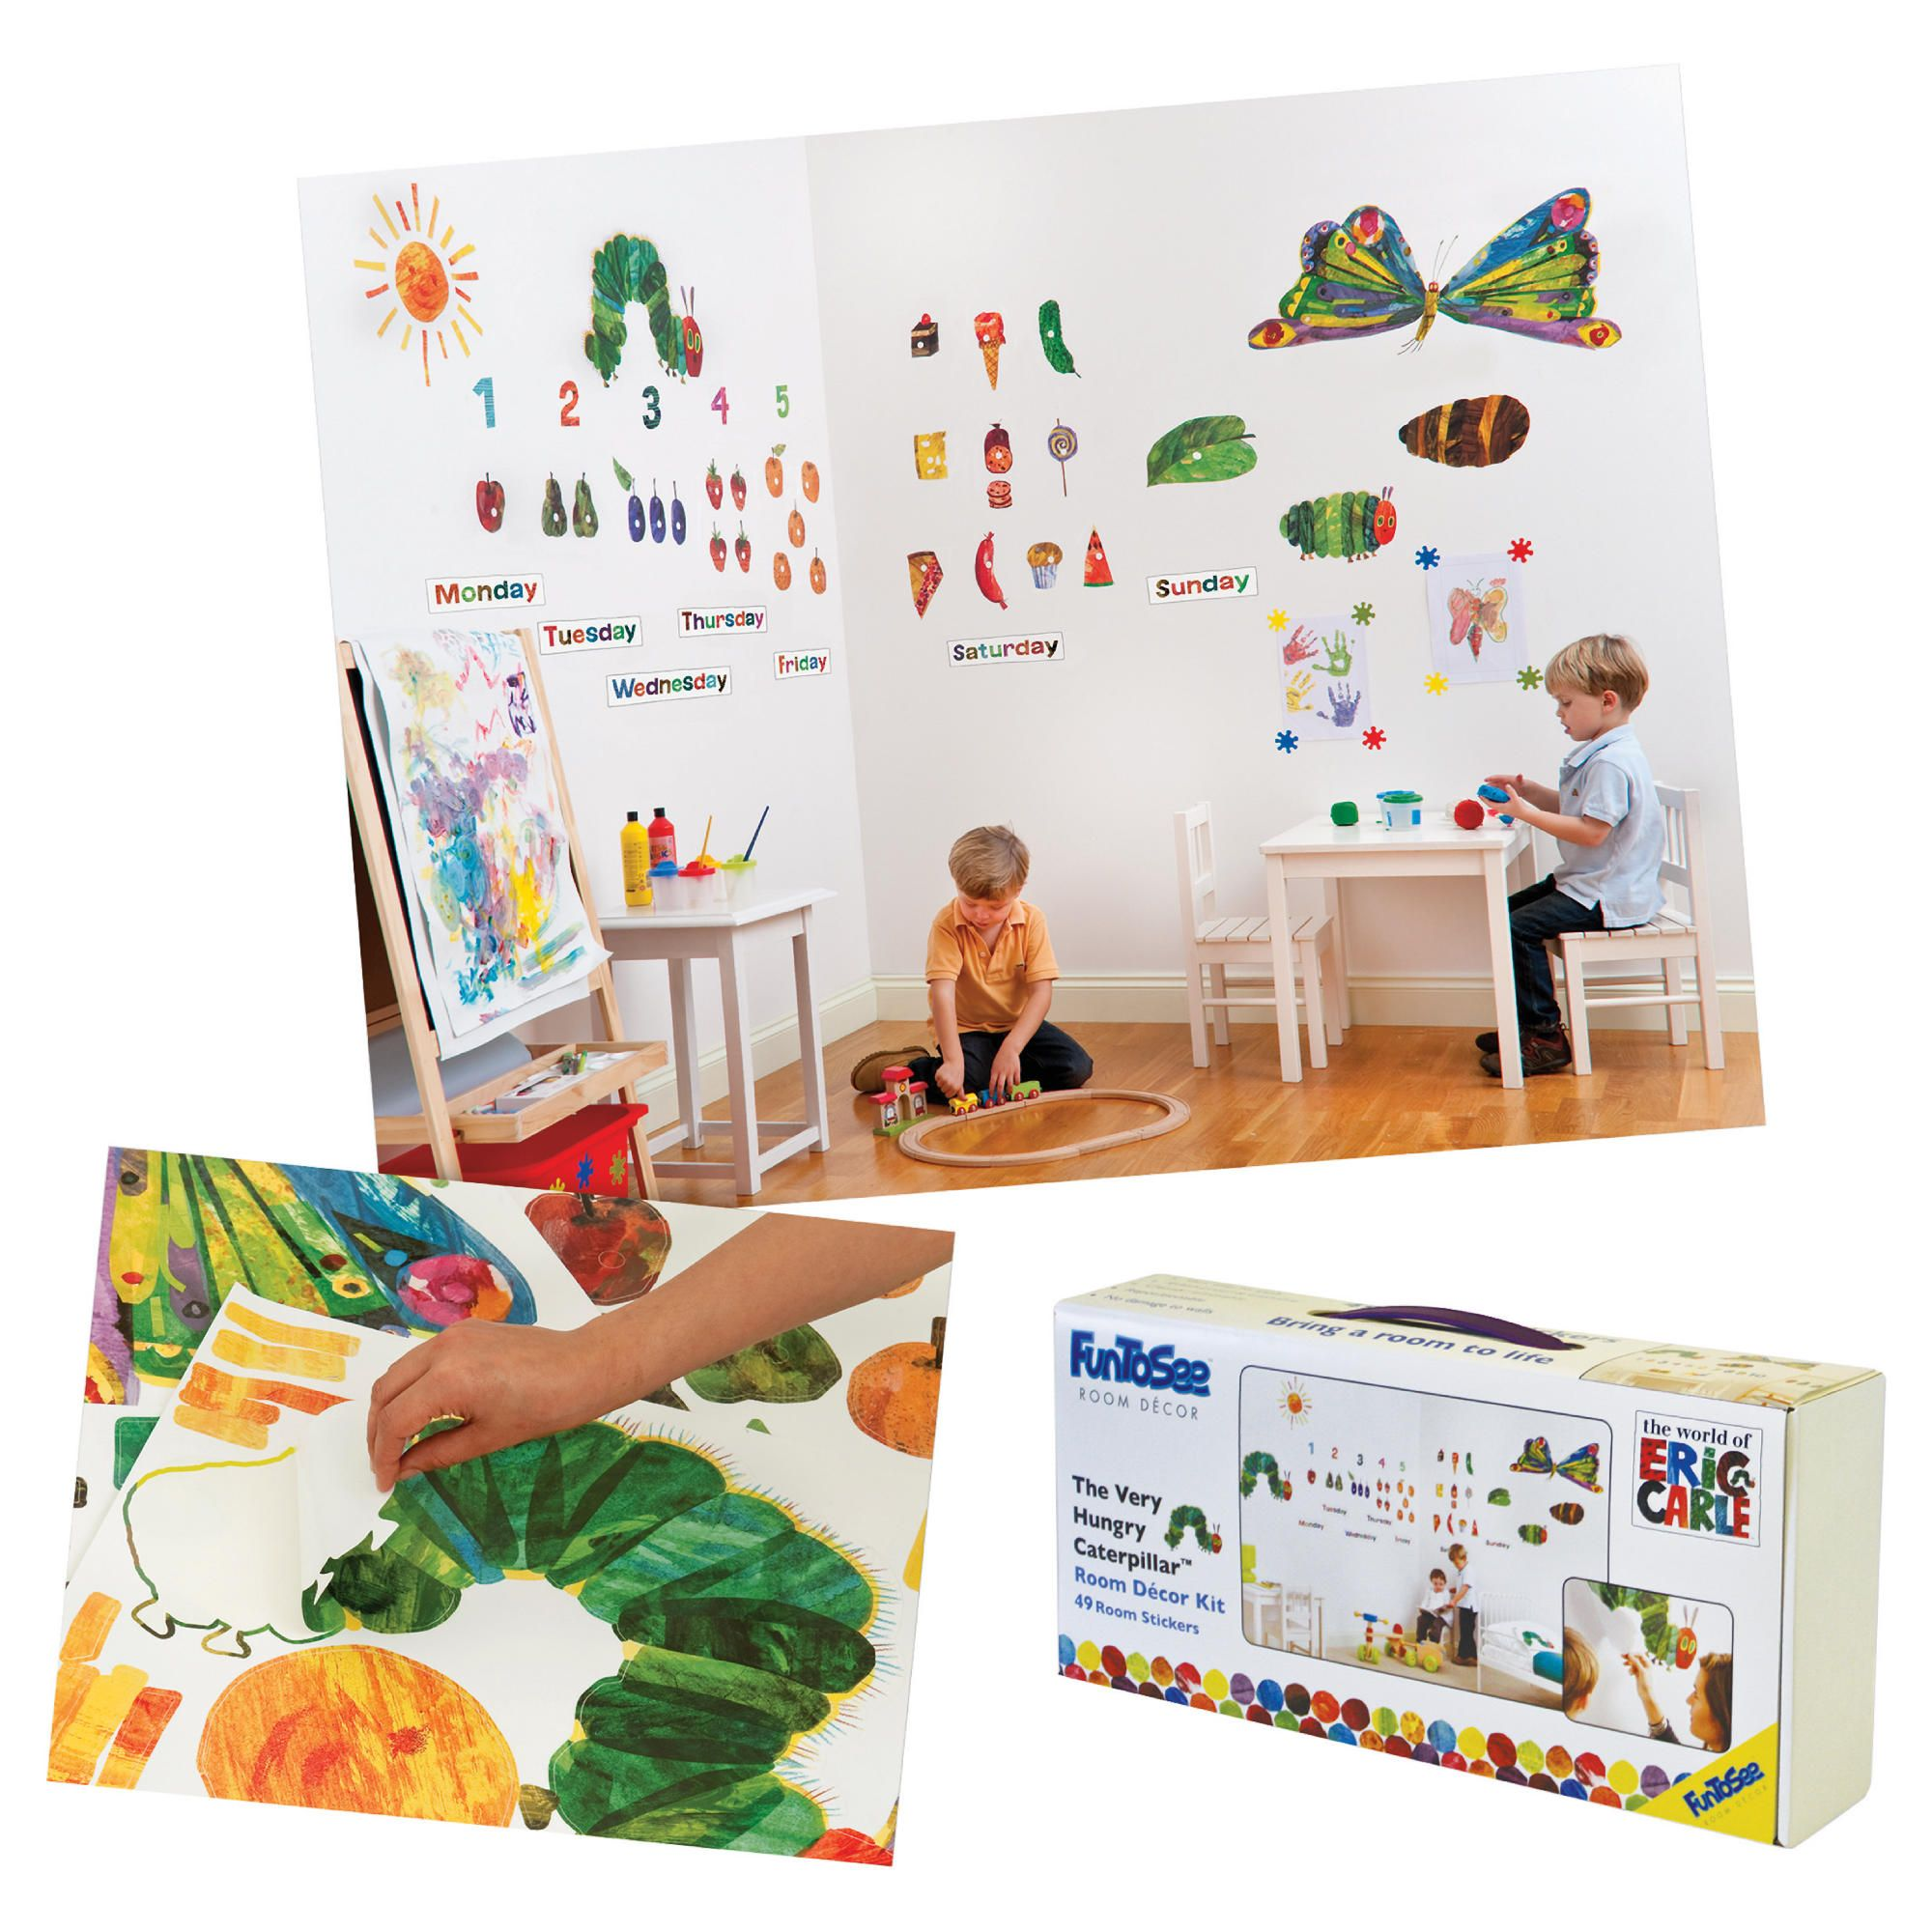 myshop the very hungry caterpillar sticker book by eric carle